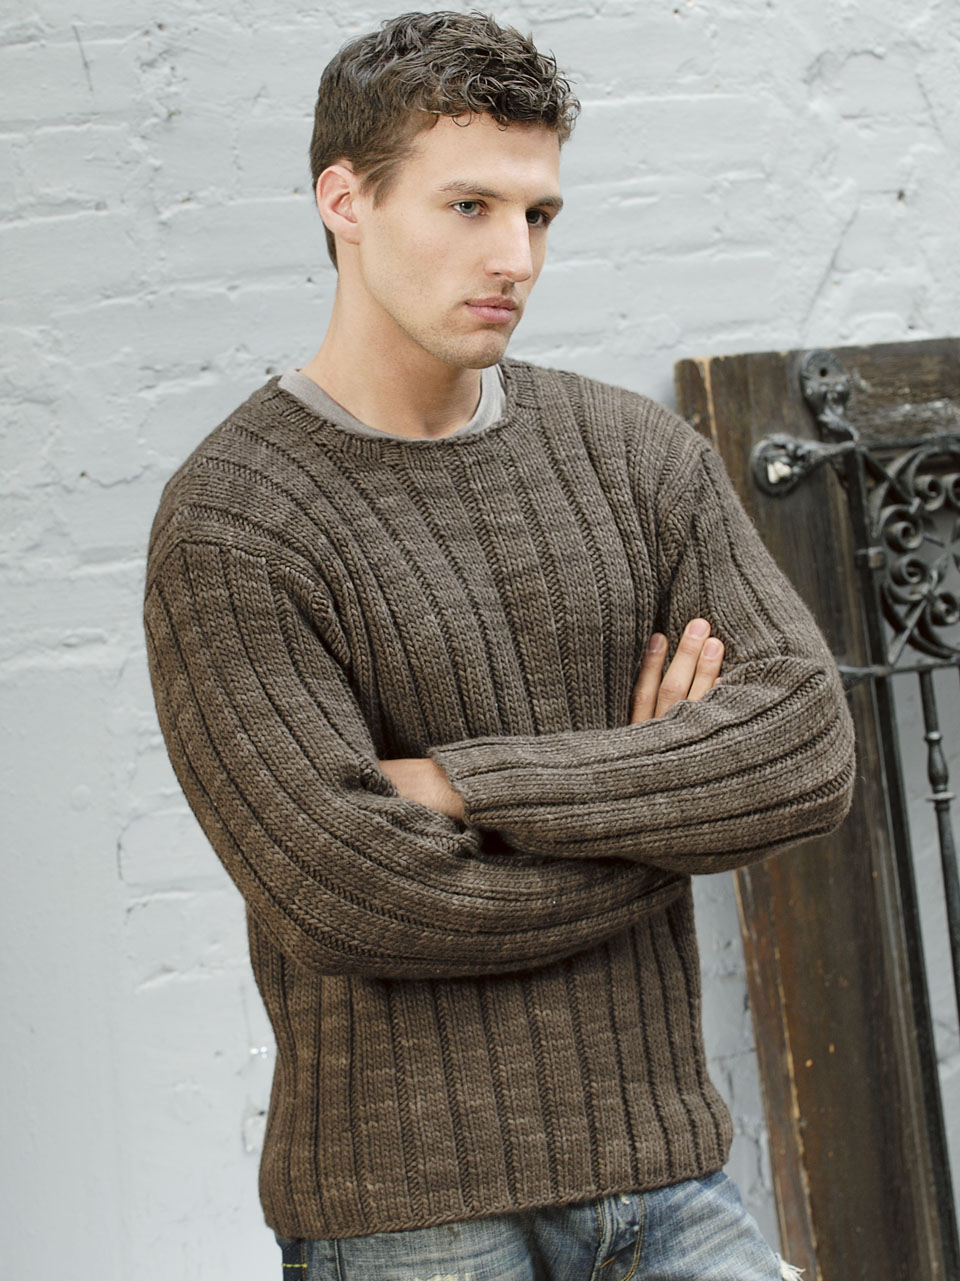 Free Knitting Patterns For Men's Sweaters 14 Best Photos Of Free Sweater Patterns For Men Men Knit Sweater